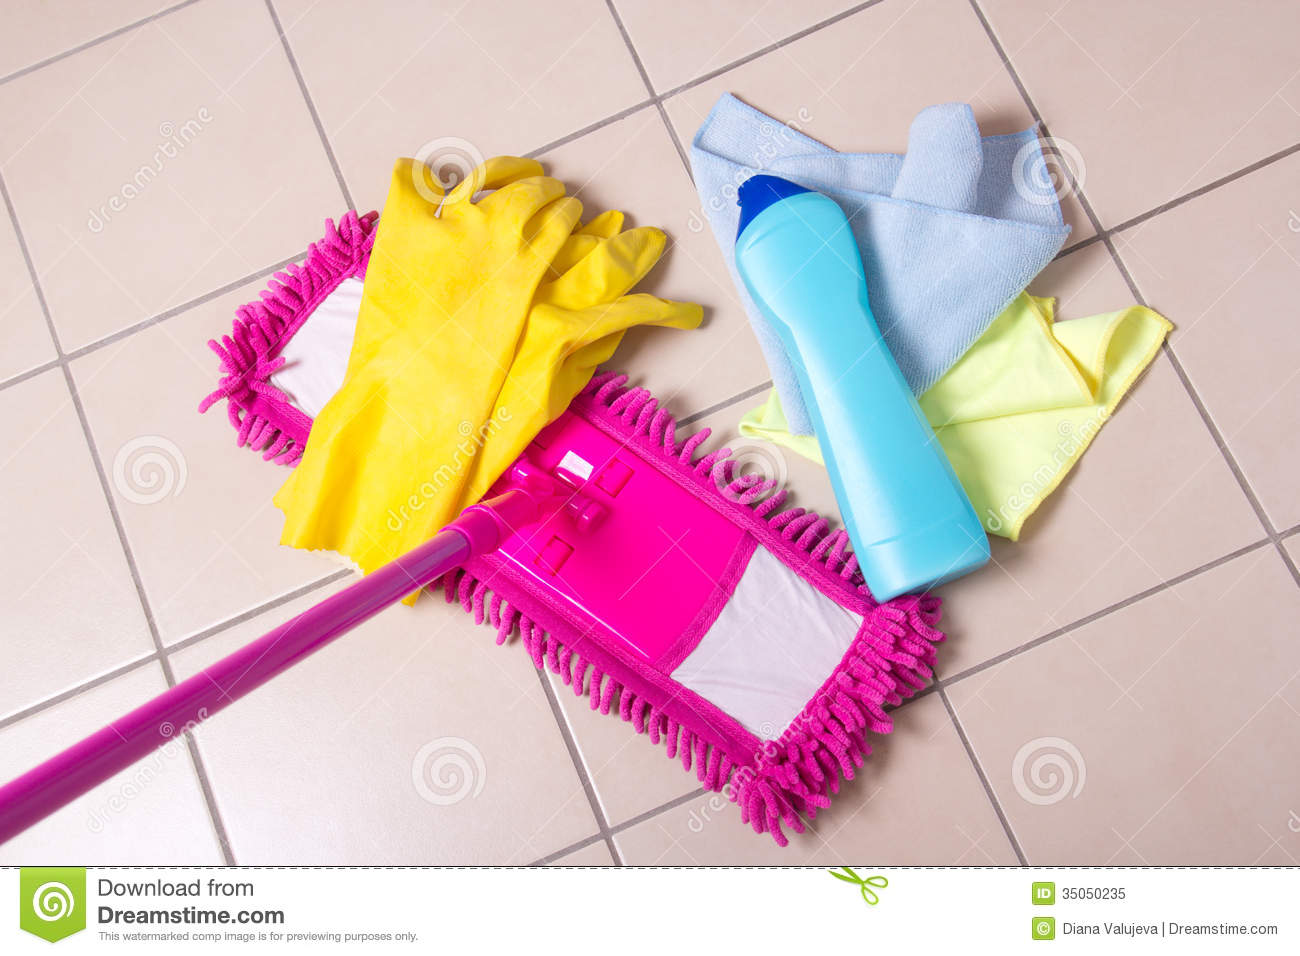 Cleaning Products On The Tile Floor Stock Image Image Of Mopping - Bathroom floor tile cleaning products